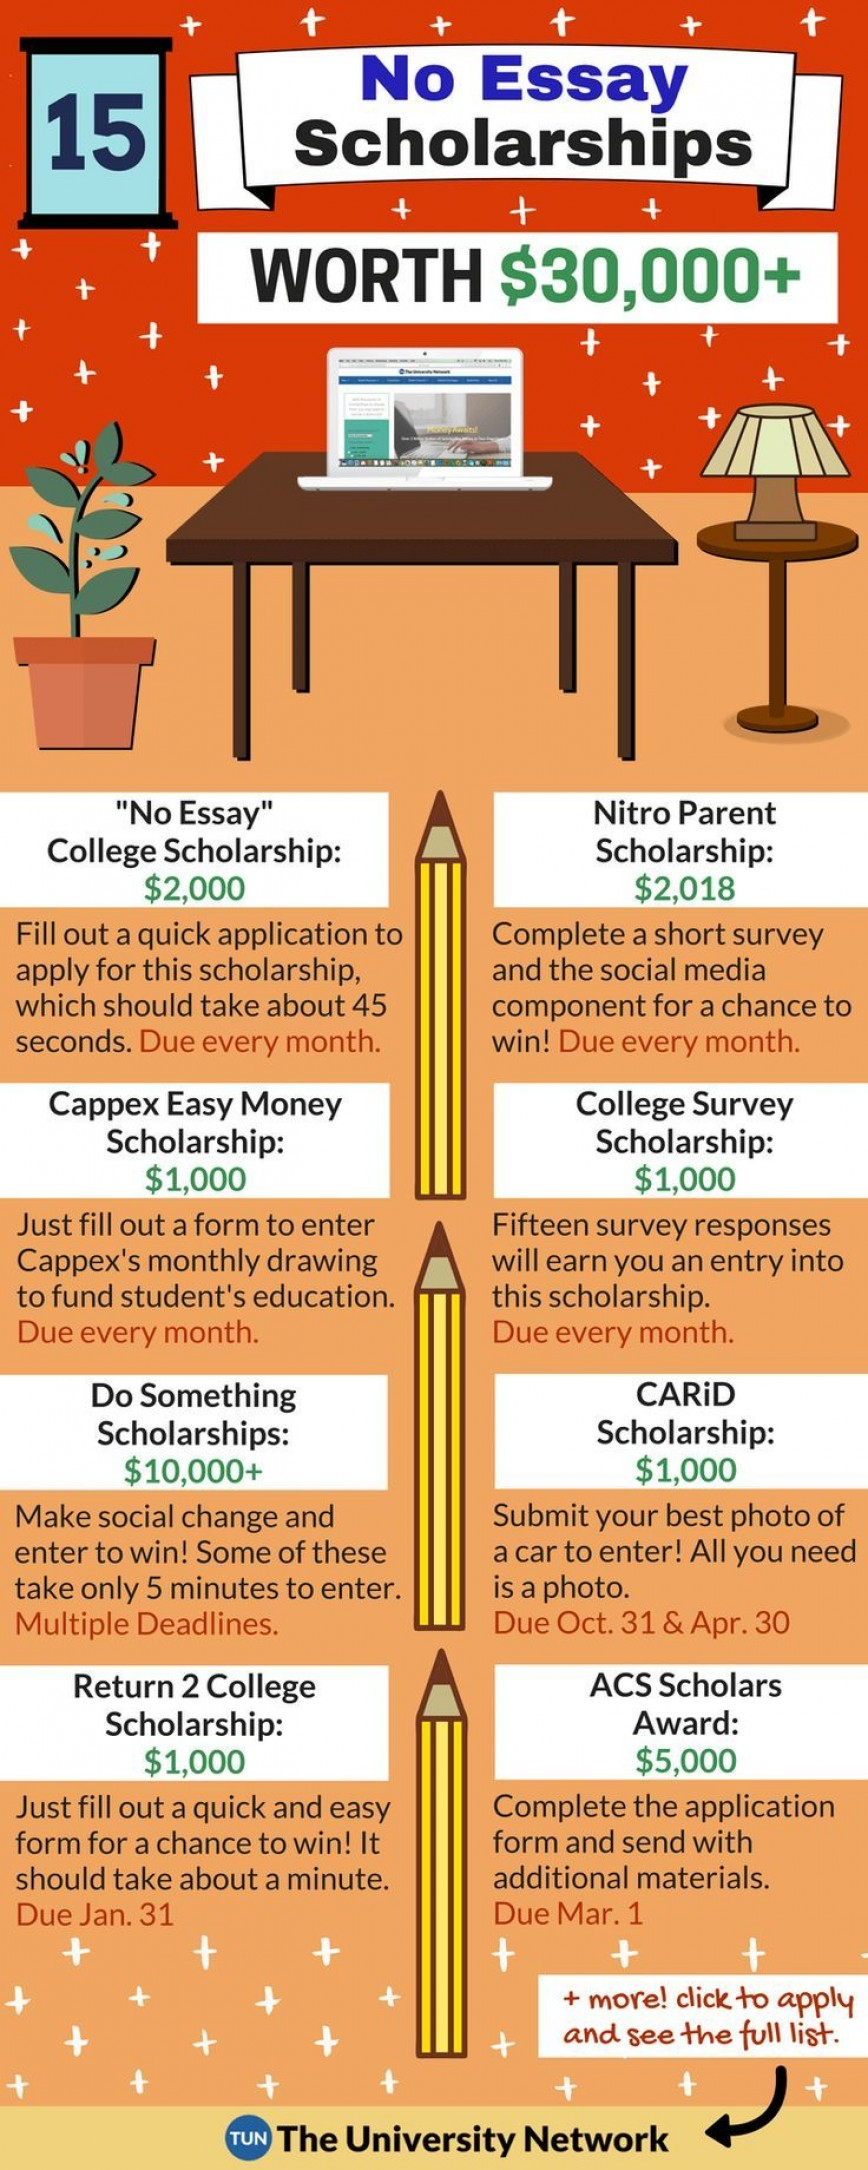 008 Essay Example No Scholarship Wondrous Scholarships 2019 Graduates For High School Seniors Applications 868